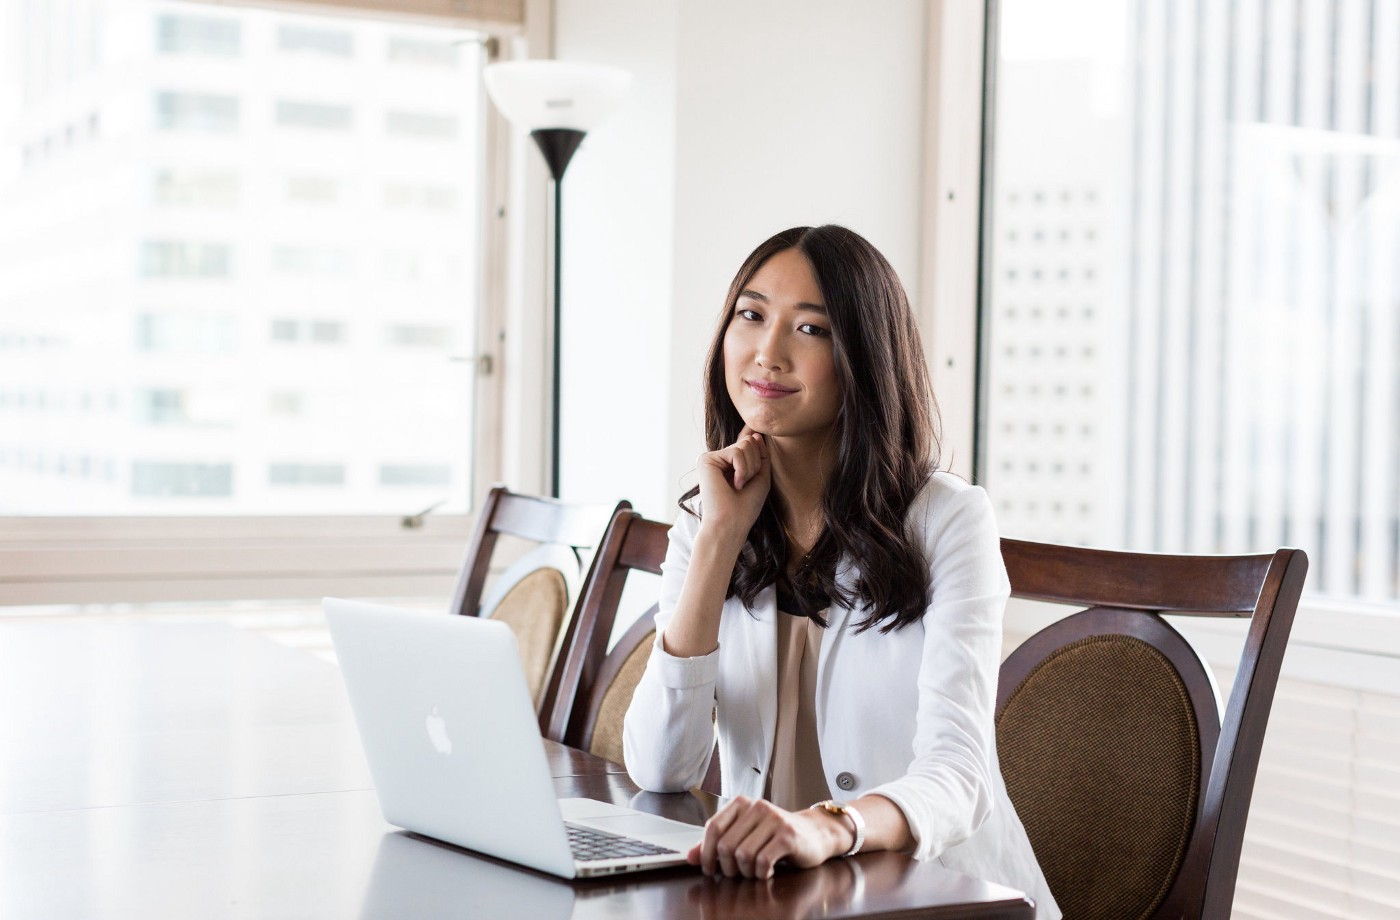 inDinero CEO Jessica Mah shares 6 of her top tax and accounting tips for startups in 2020